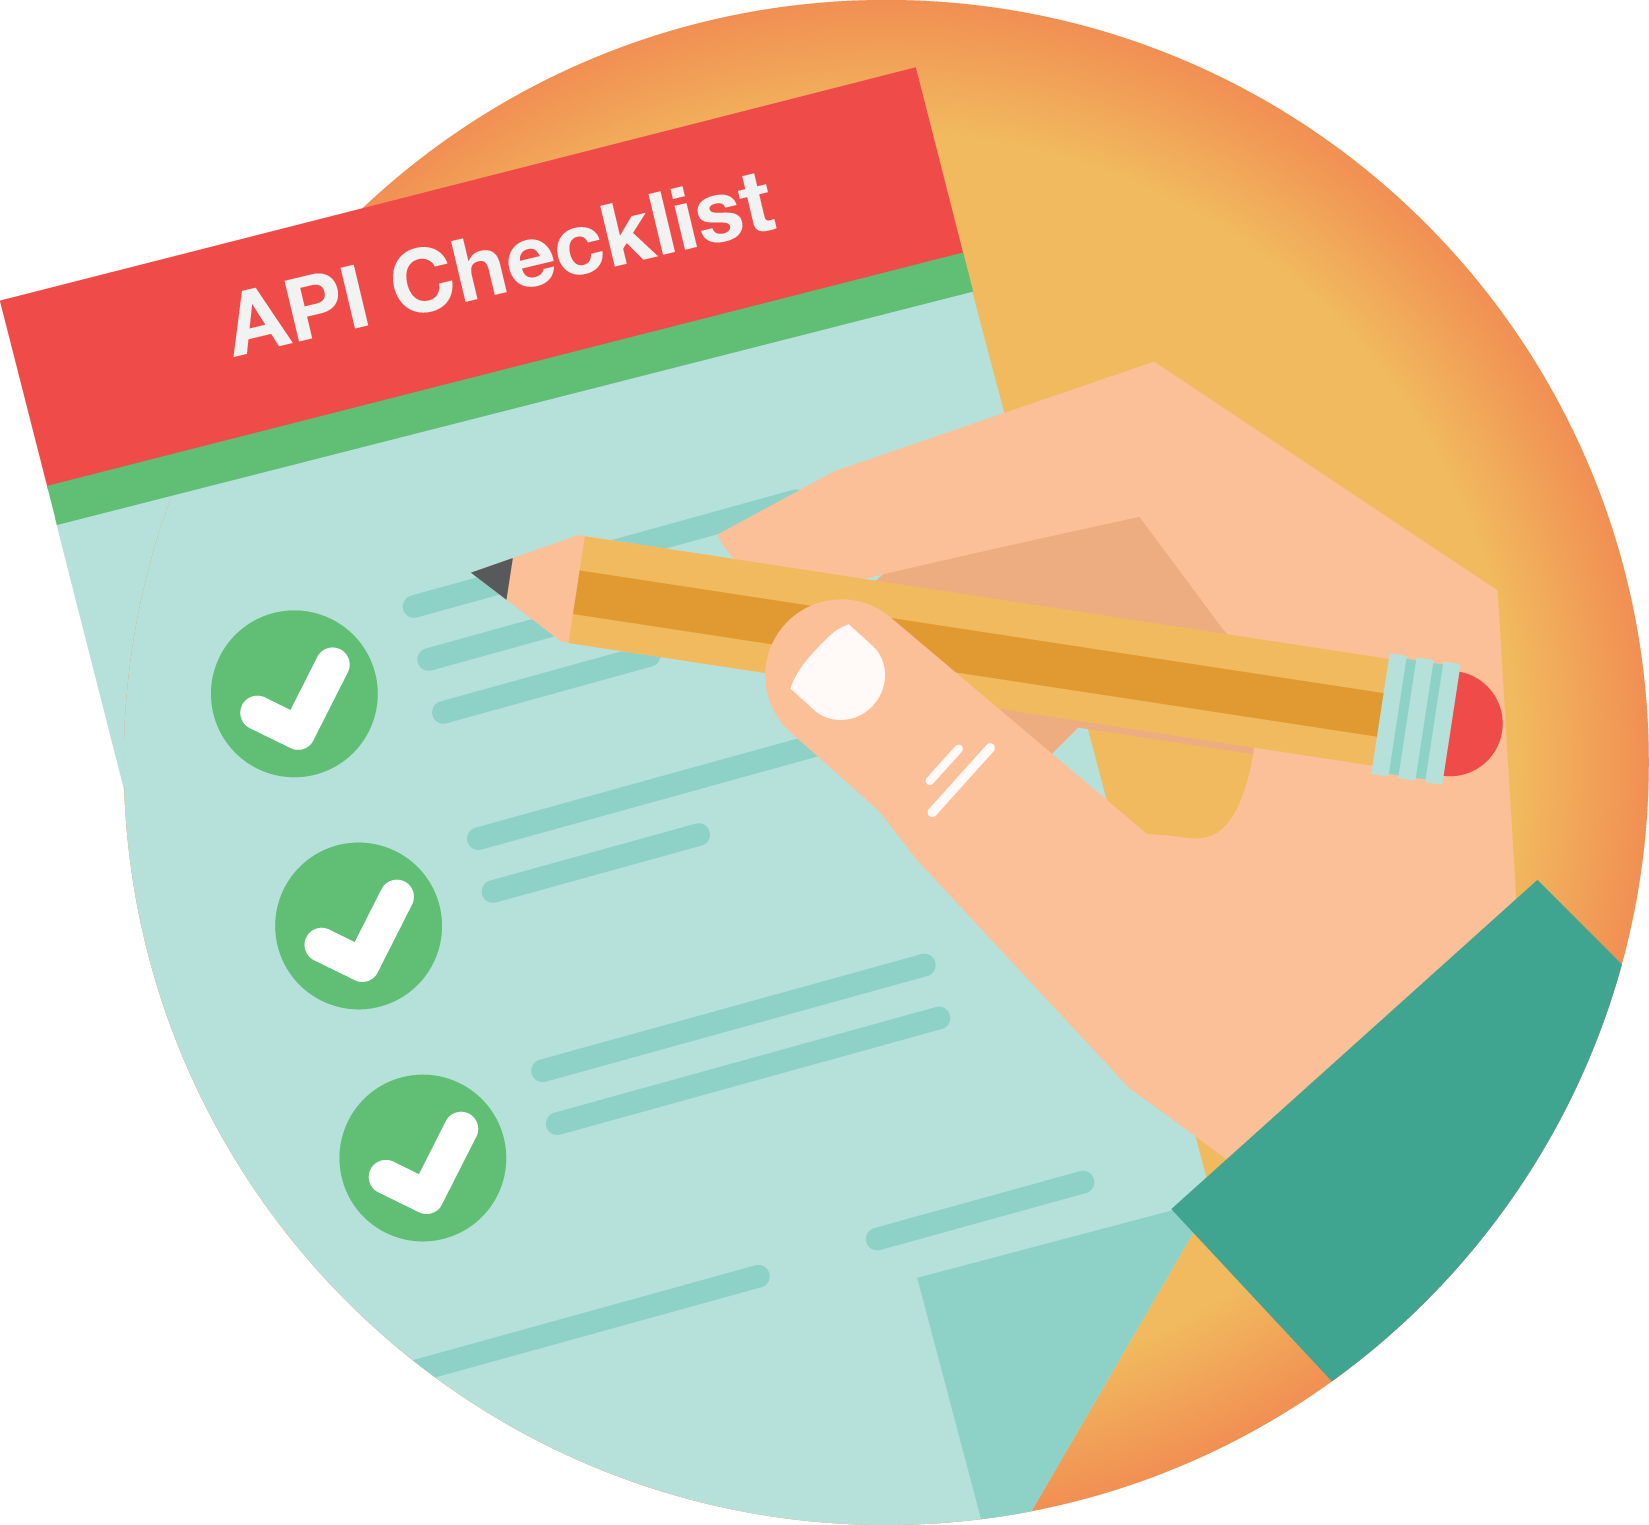 Using the API is simple to get started and maintain